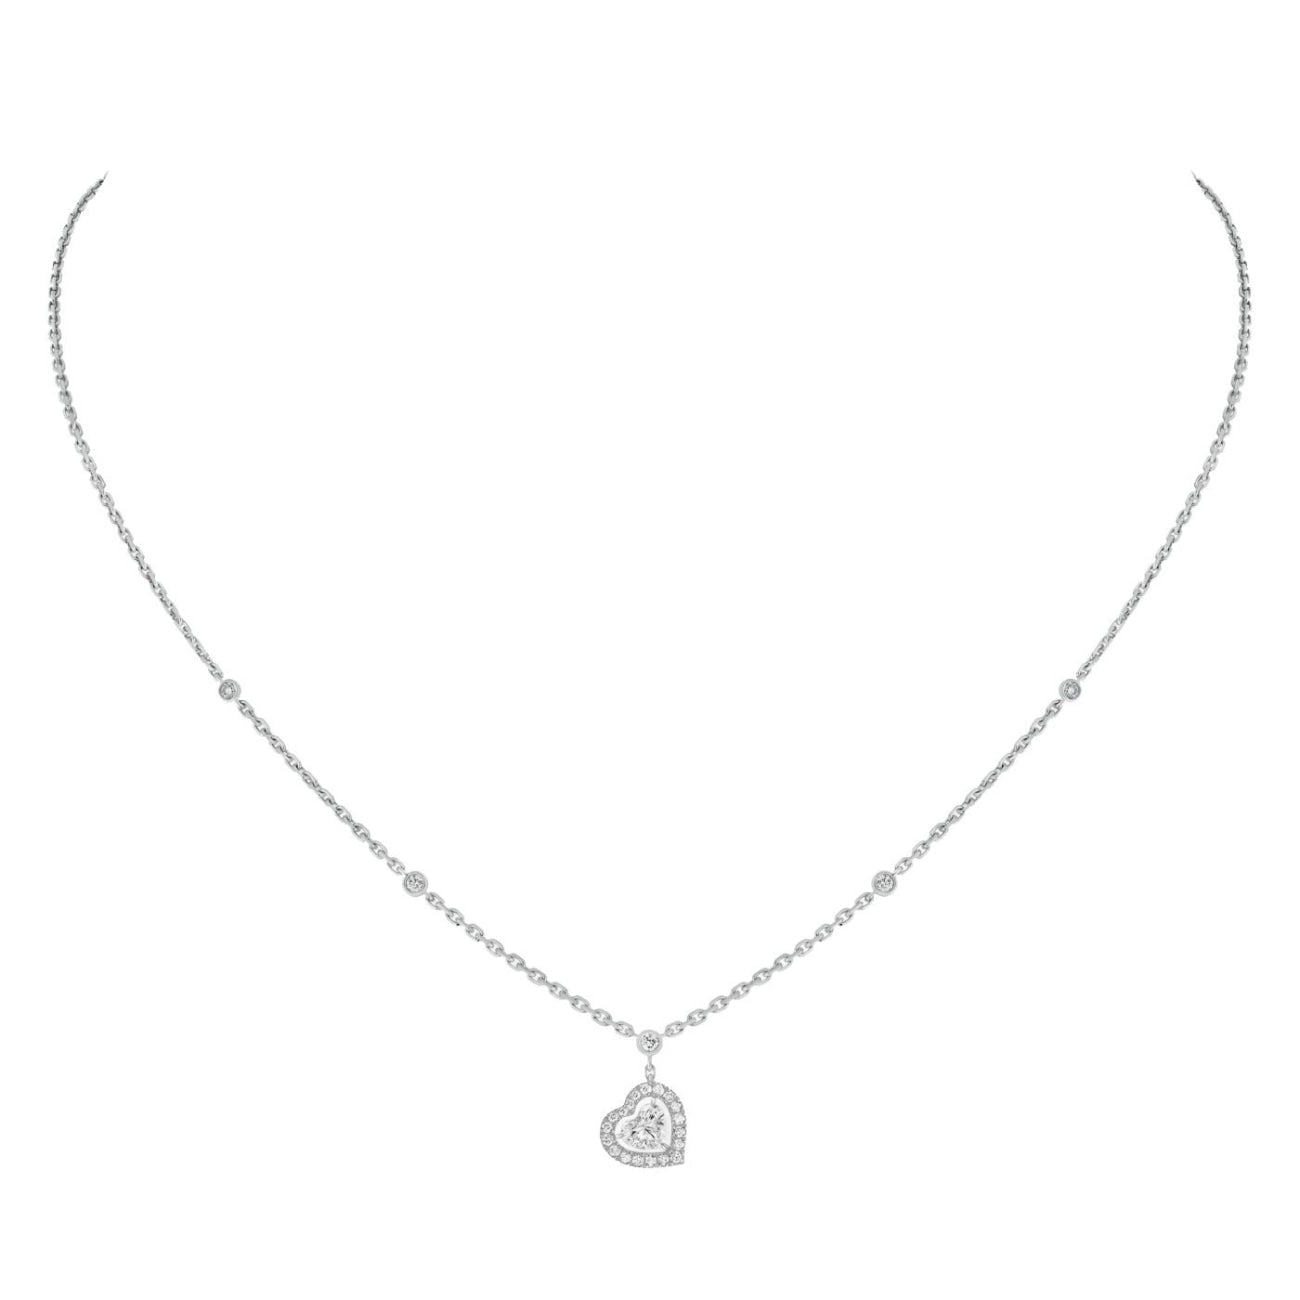 Messika Jewelry - WHITE GOLD JOY CŒUR 0.15-CARAT DIAMOND NECKLACE | Manfredi Jewels